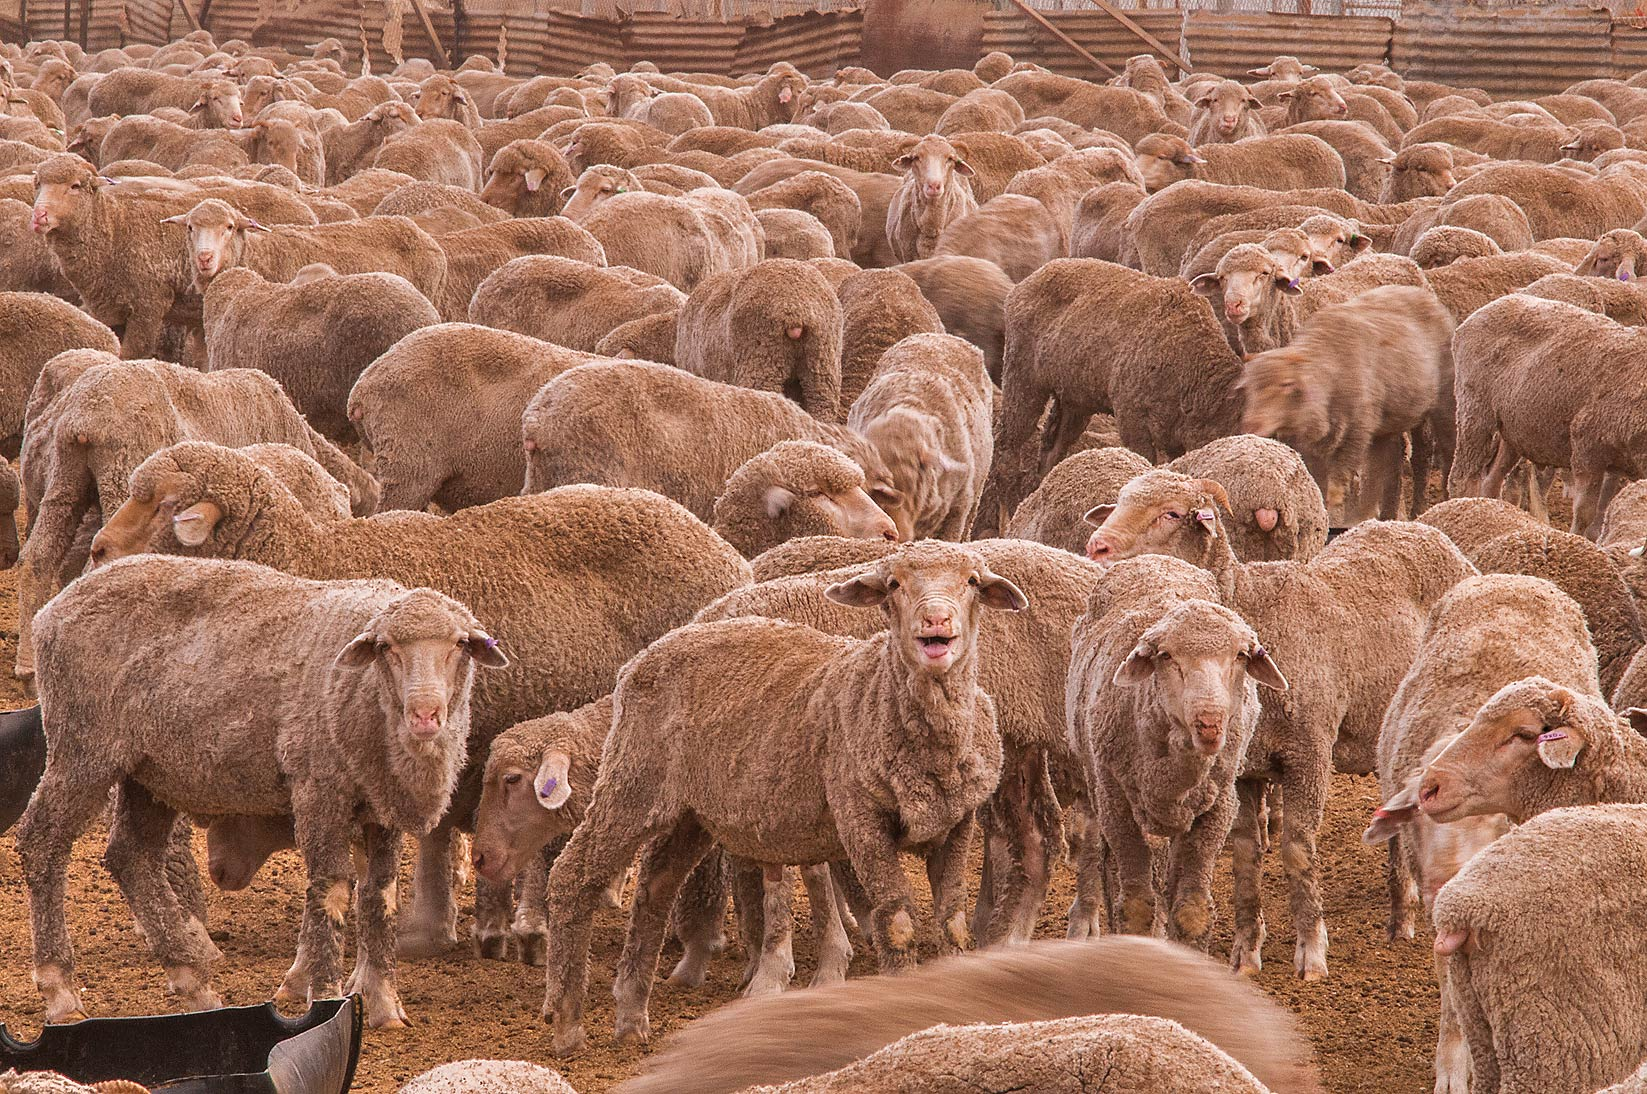 Sheep with lumpy wool crammed into a feedlot in...Market, Abu Hamour area. Doha, Qatar